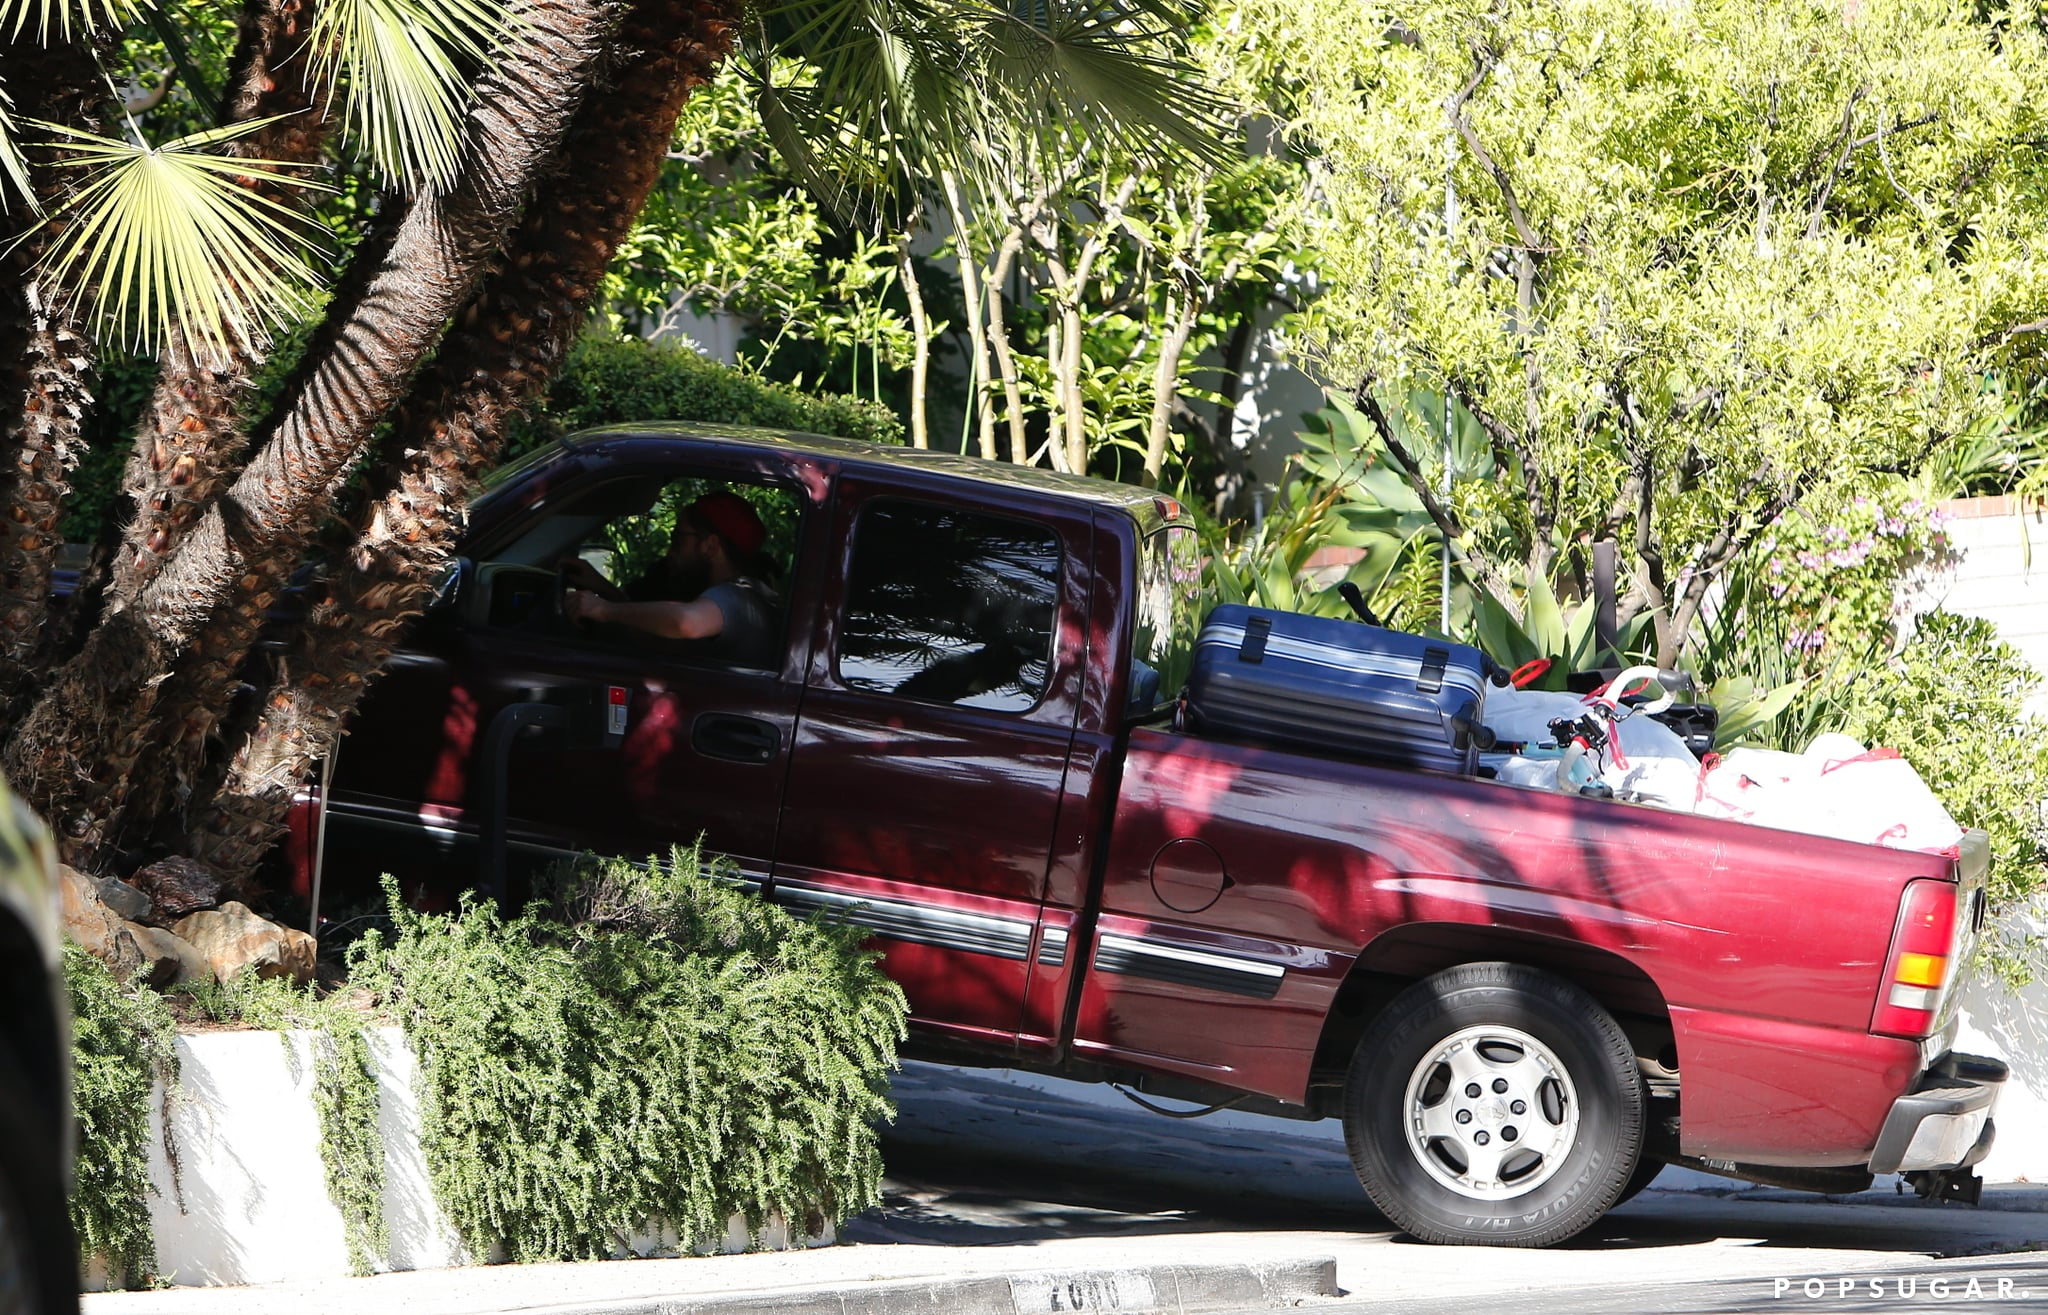 Robert Pattinson pulled into a private driveway.